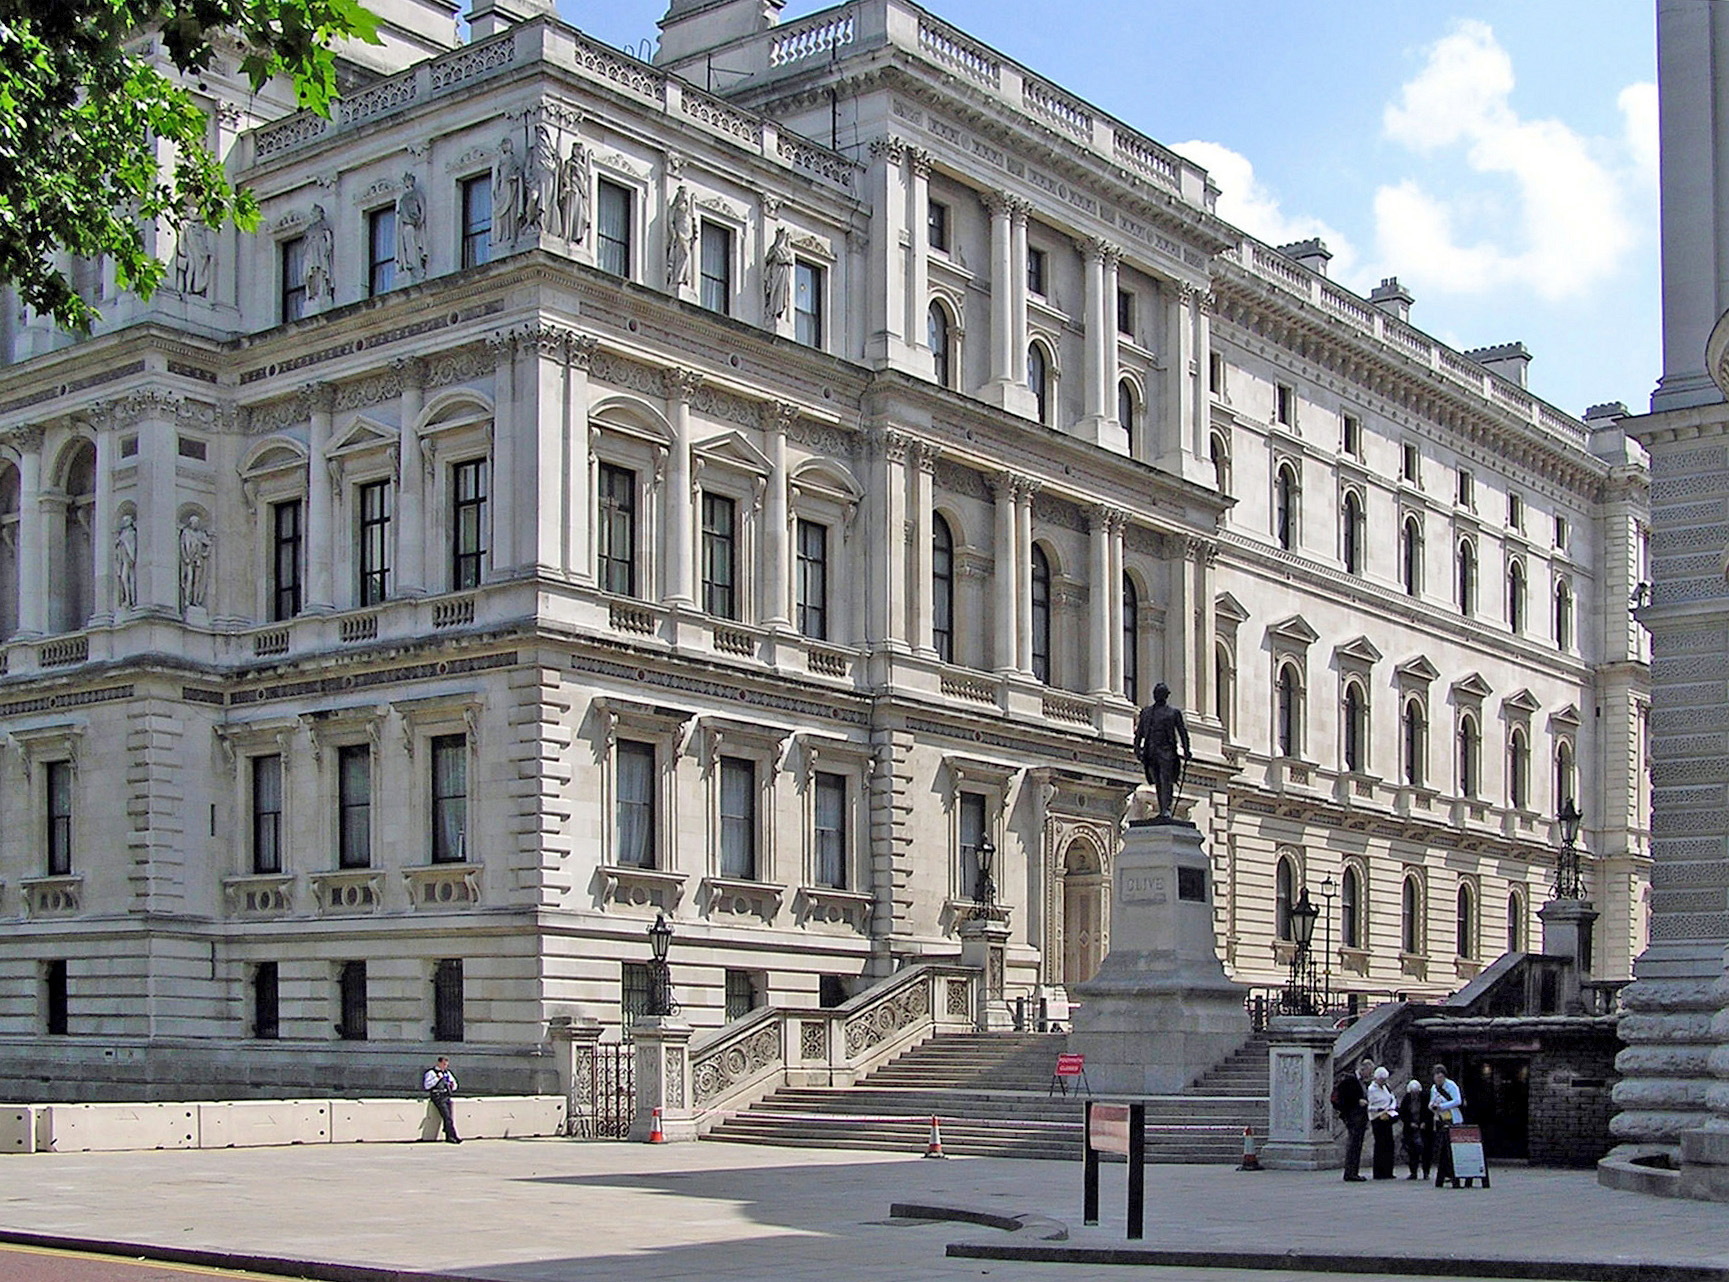 Foreign And Commonwealth Office London Building